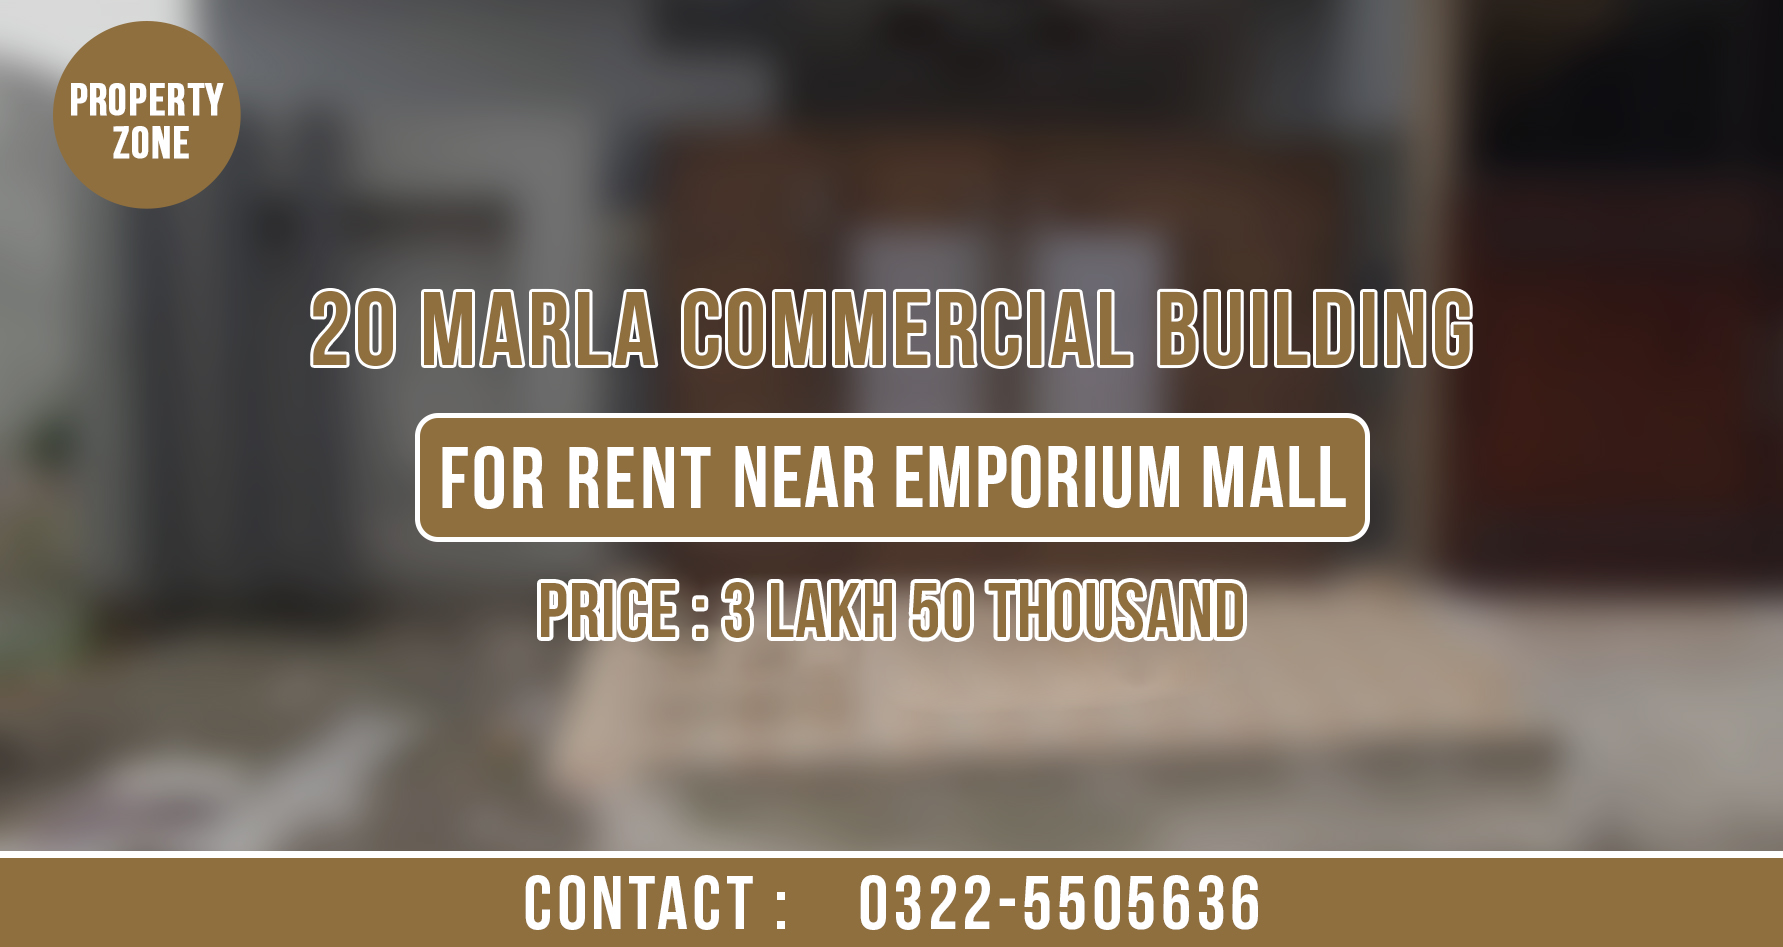 Property_Zone_Real_Estate_Builders 20 Marla Commercial